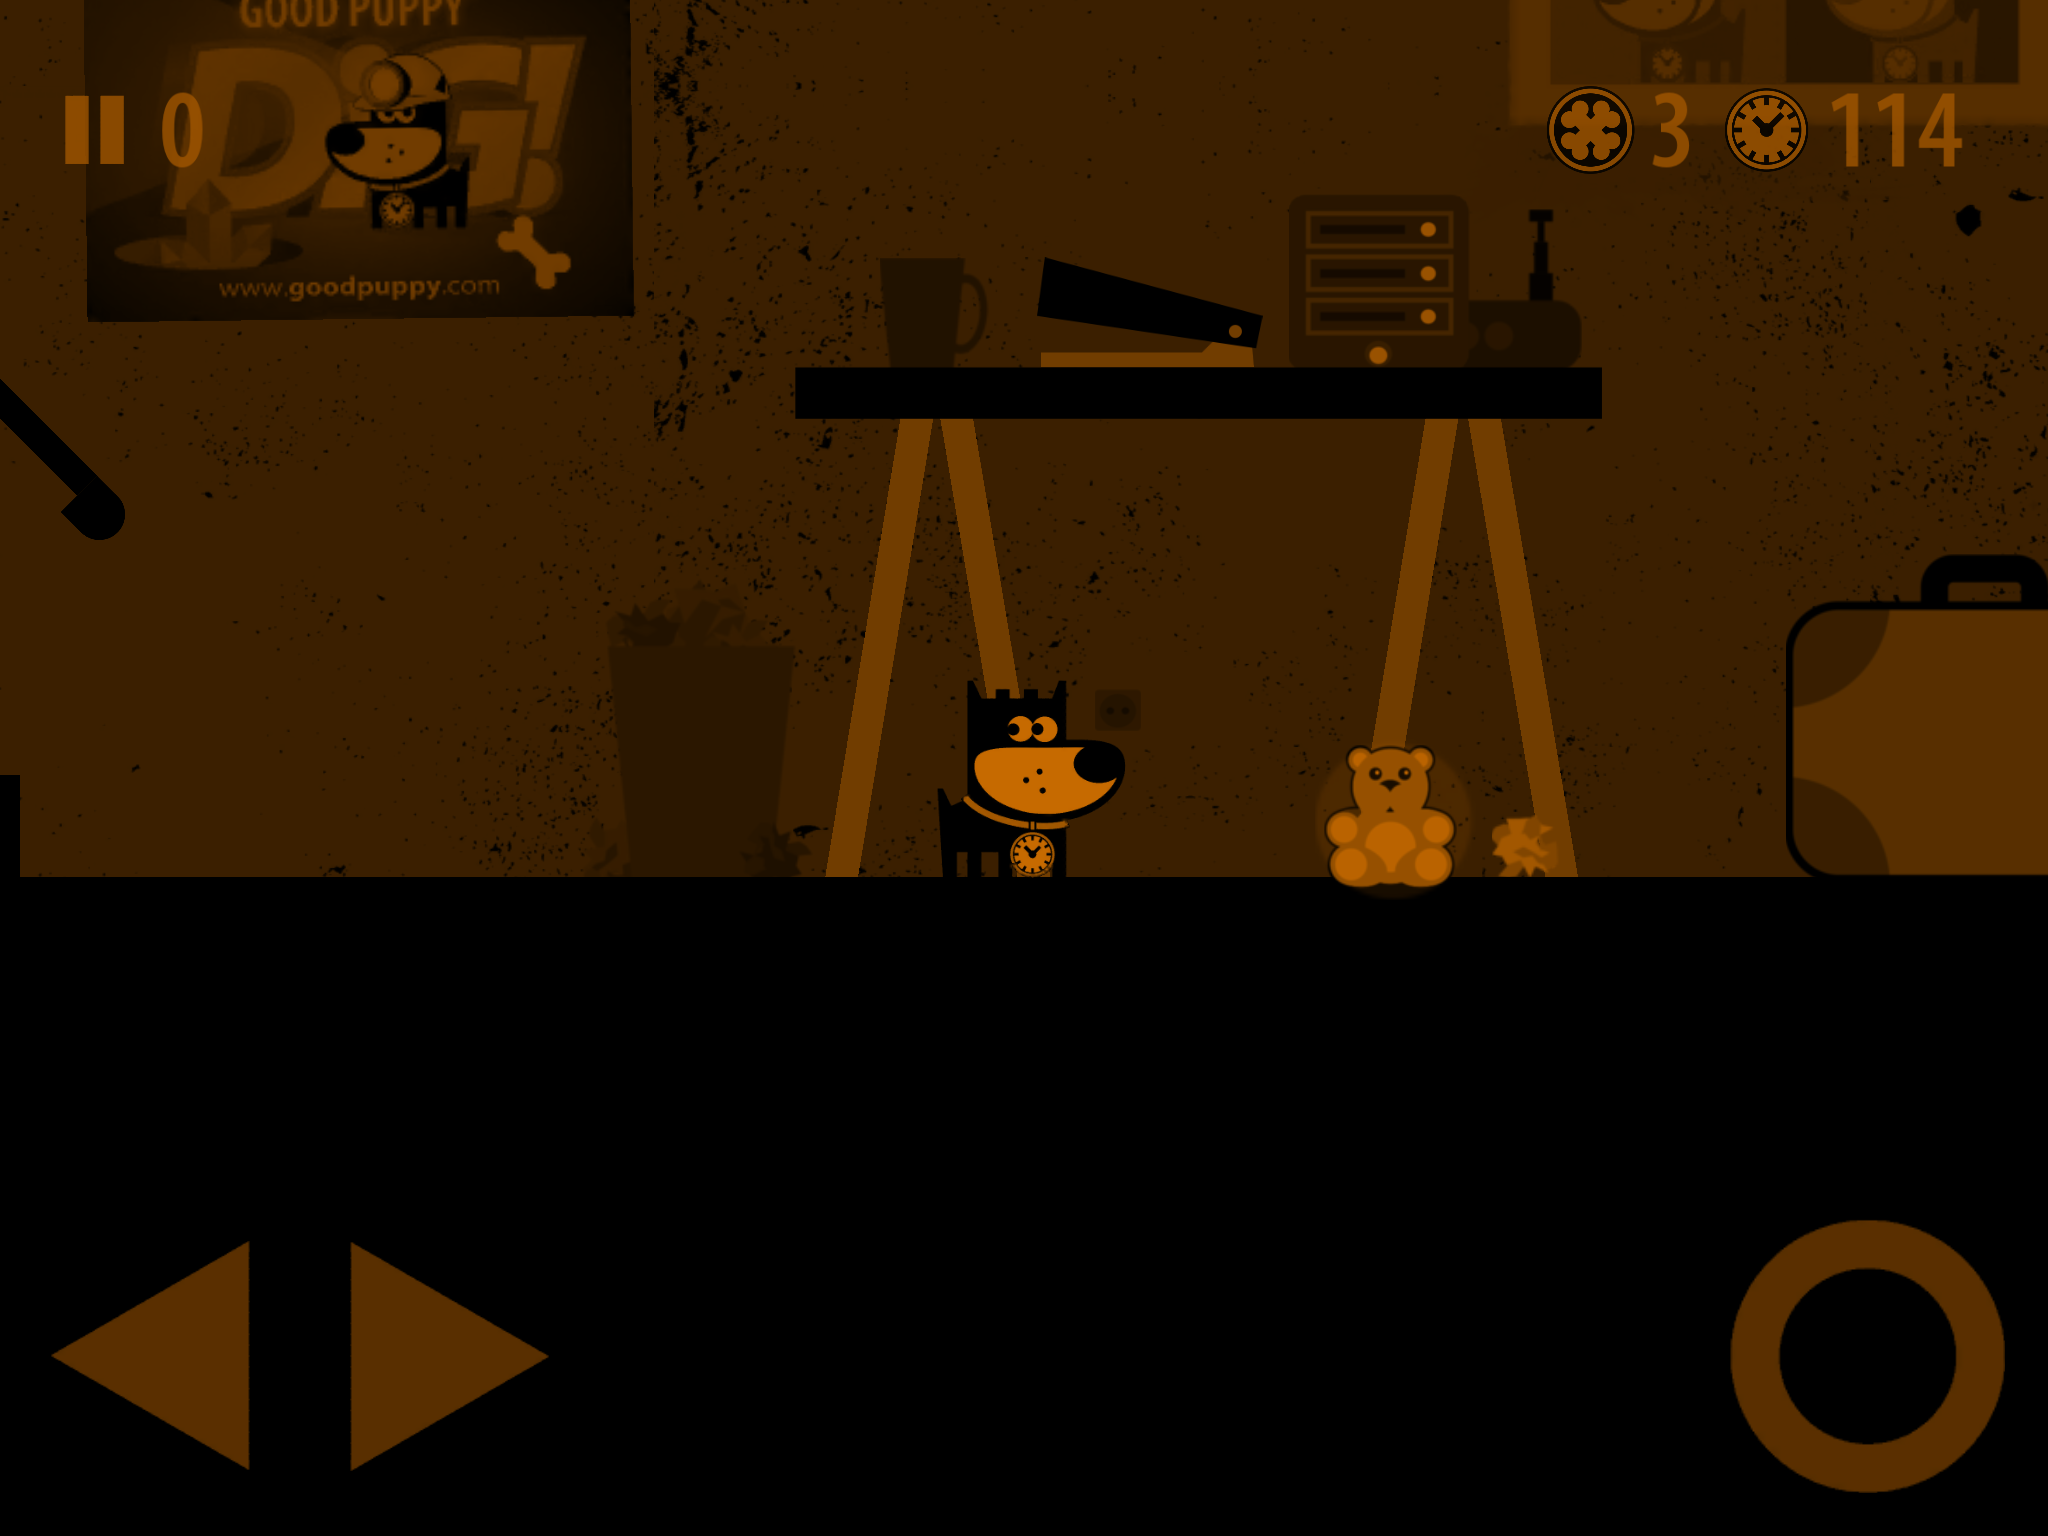 Retro-Platform-Action-Adventure-Game-GOOD-PUPPY-CLUELESS-3-Free-Download.PNG